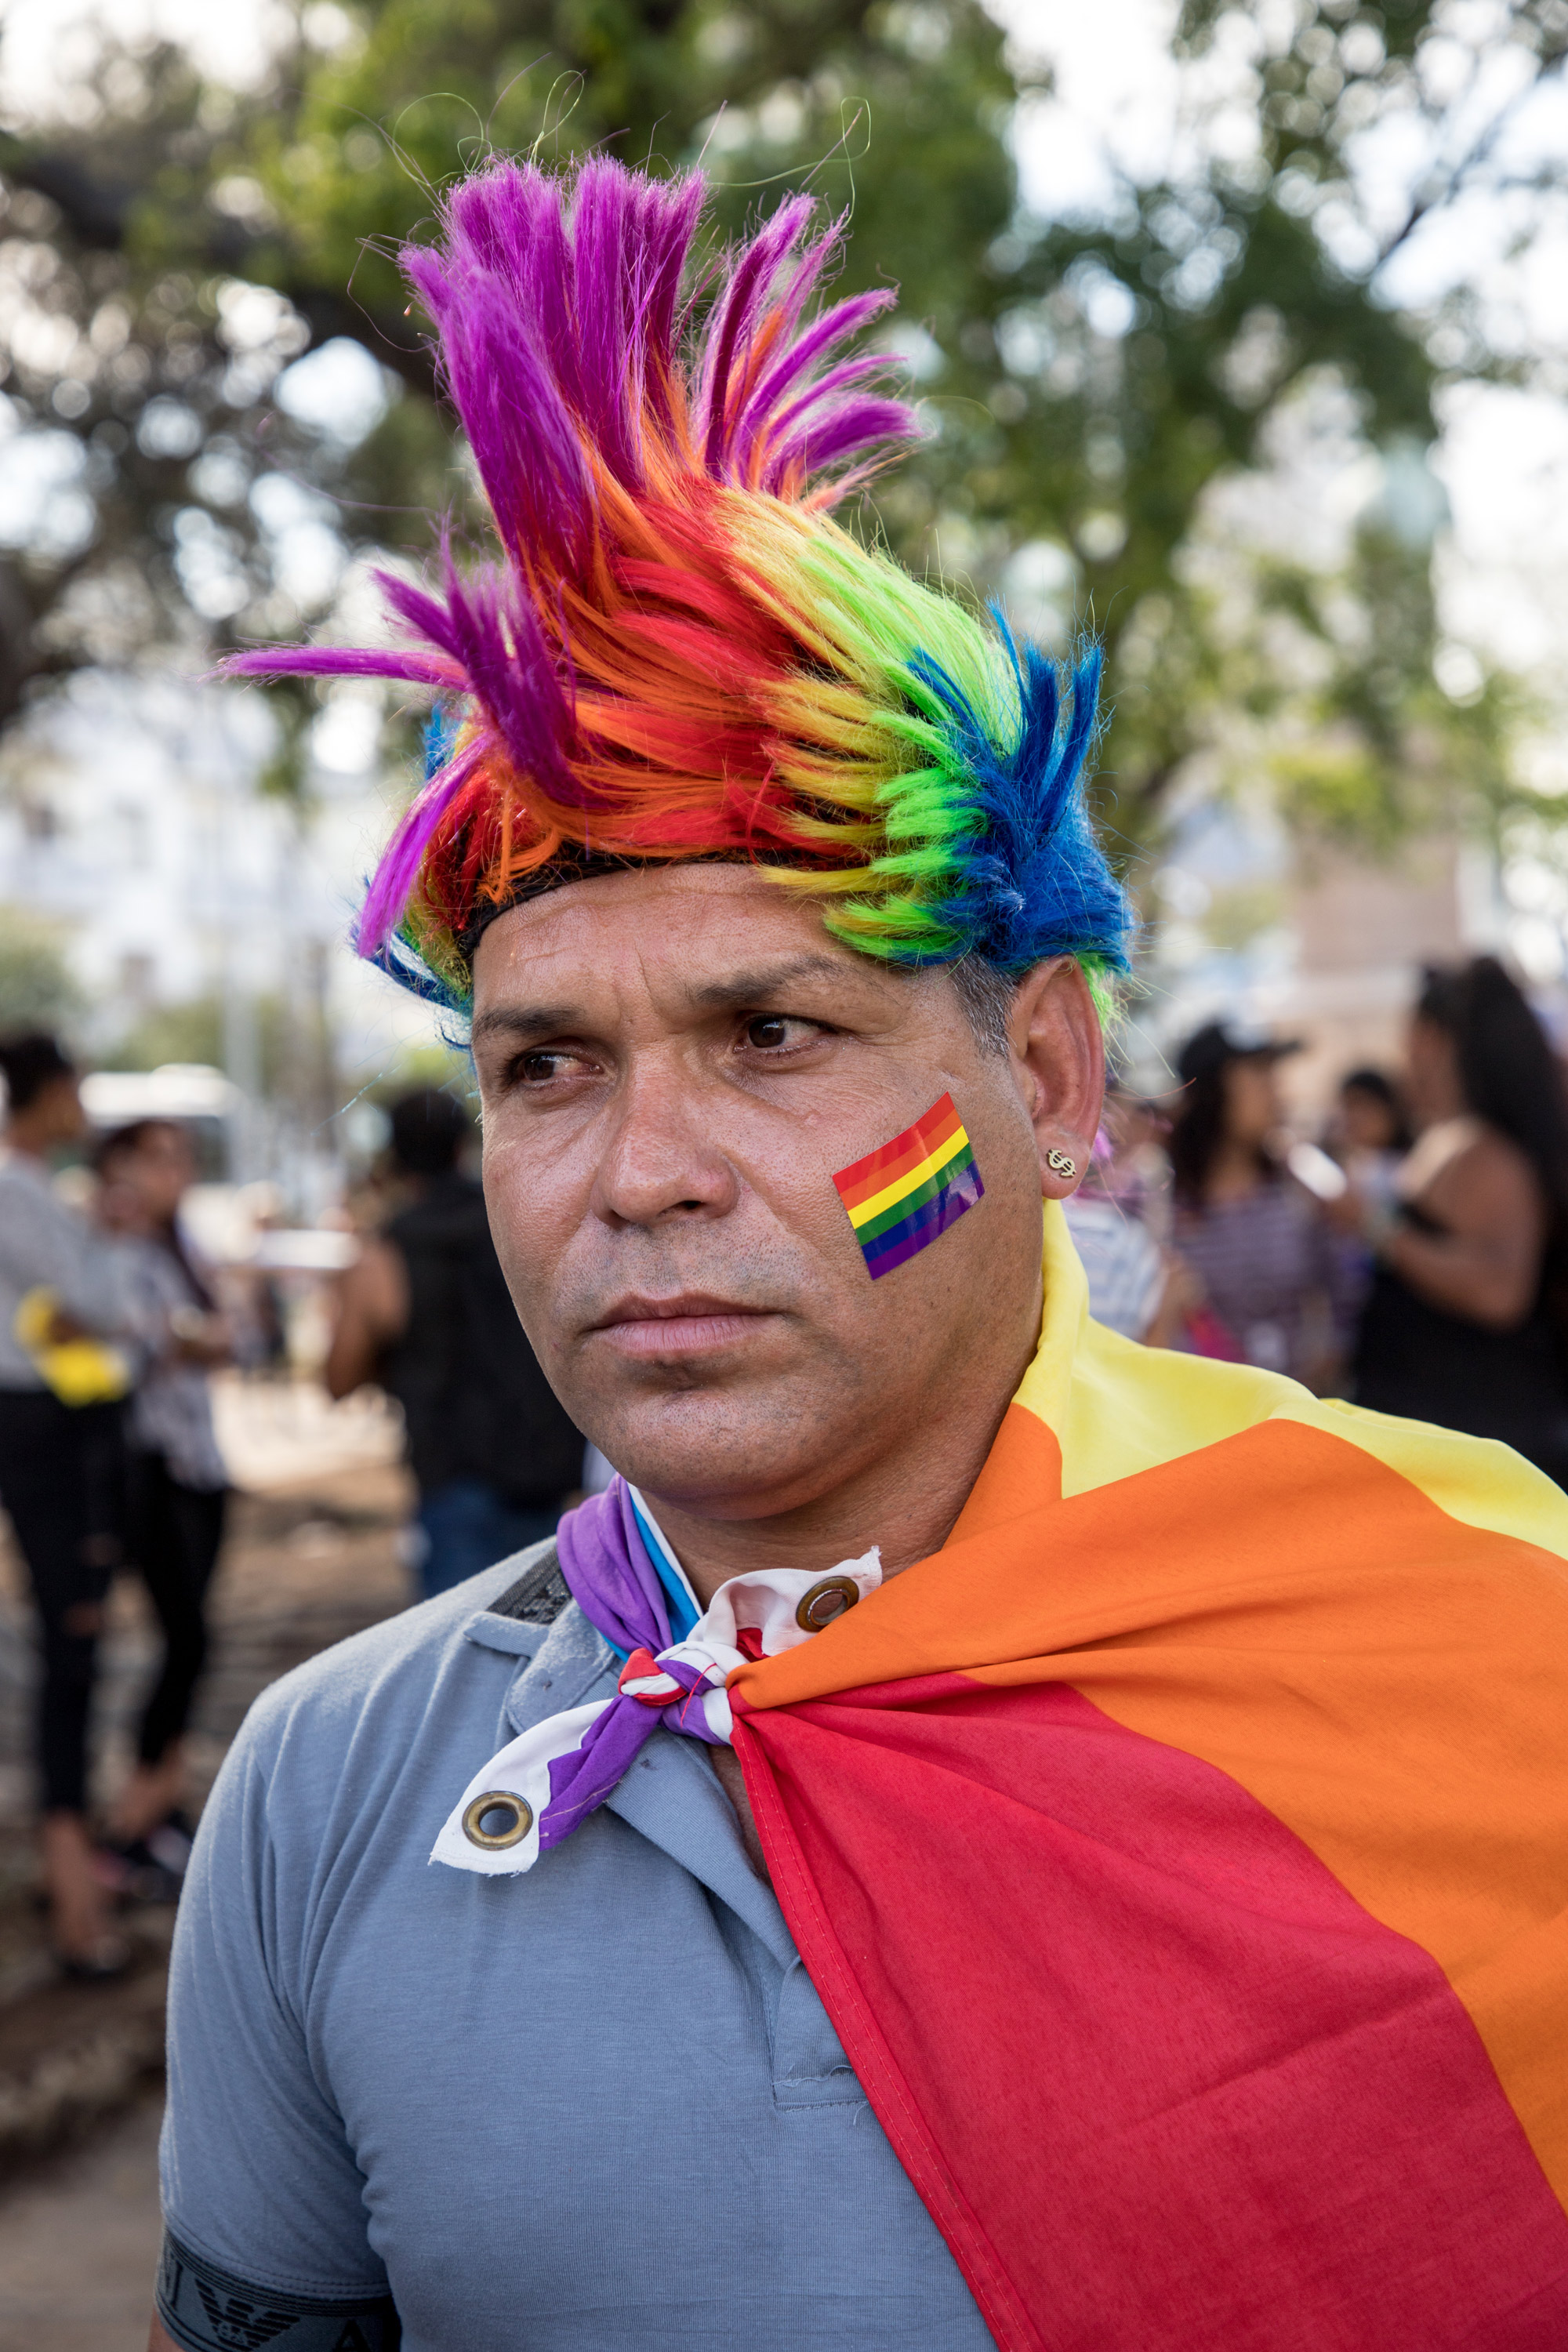 Rafael Detiverce Bentei at the International Day against Homophobia and Transphobia in Havana, Cuba (Photo by Riley Robinson/The GroundTruth Project)